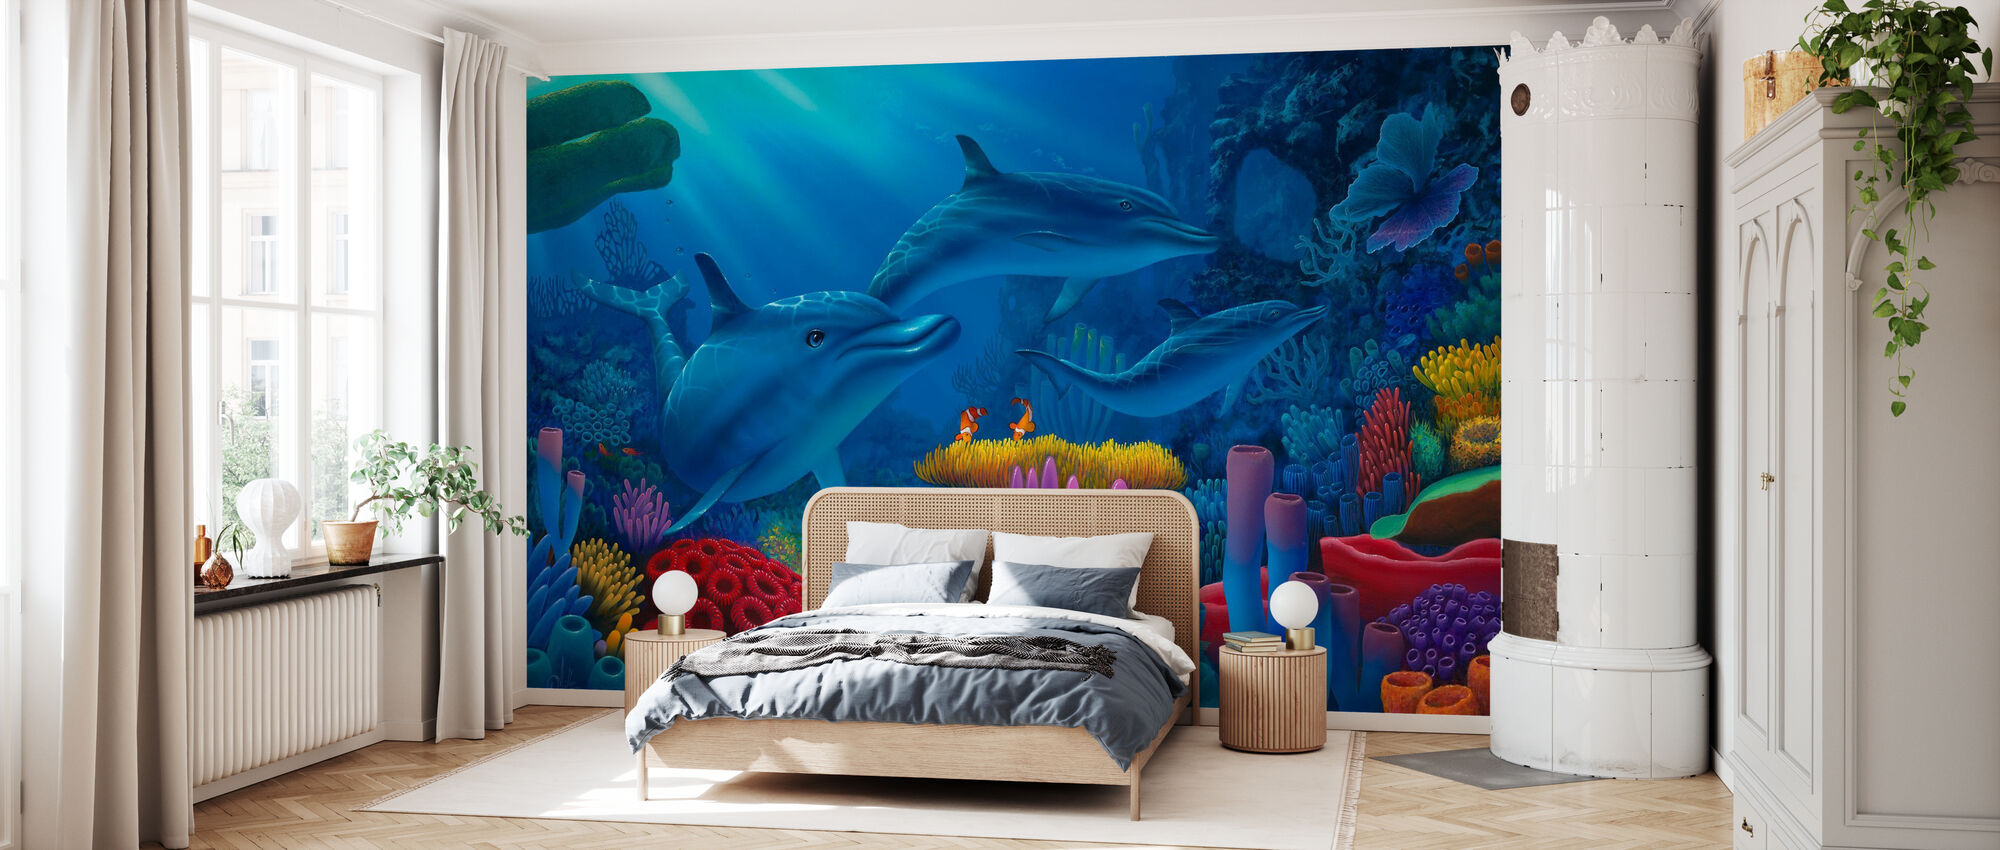 Secrets of the Sea - Wallpaper - Bedroom